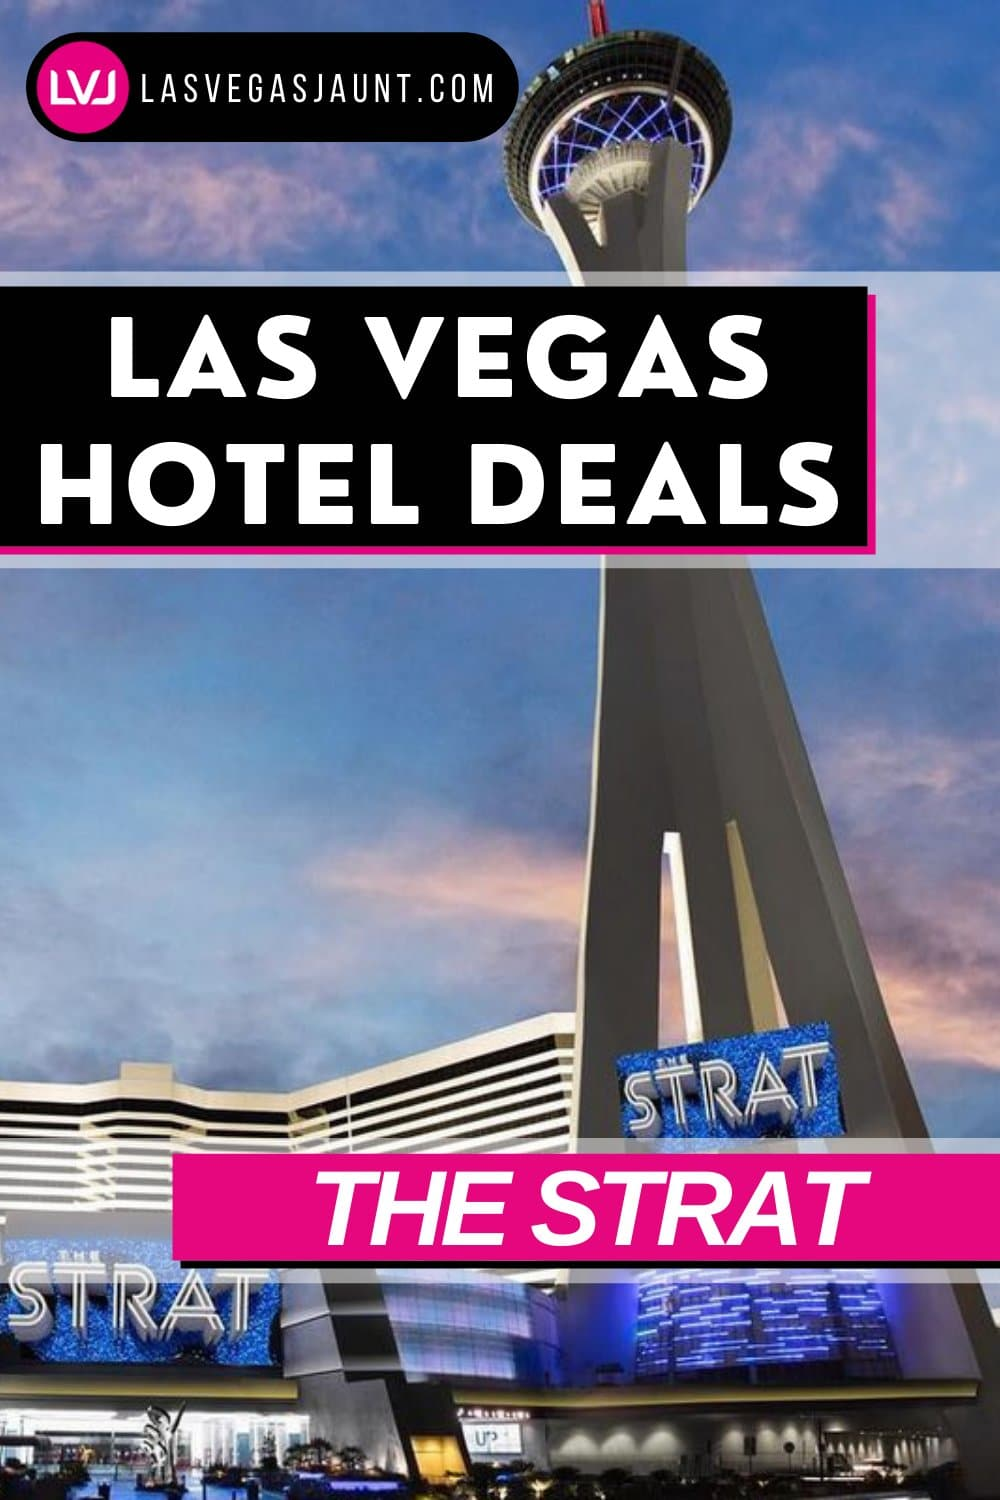 The Strat Hotel Las Vegas Deals Promo Codes & Discounts